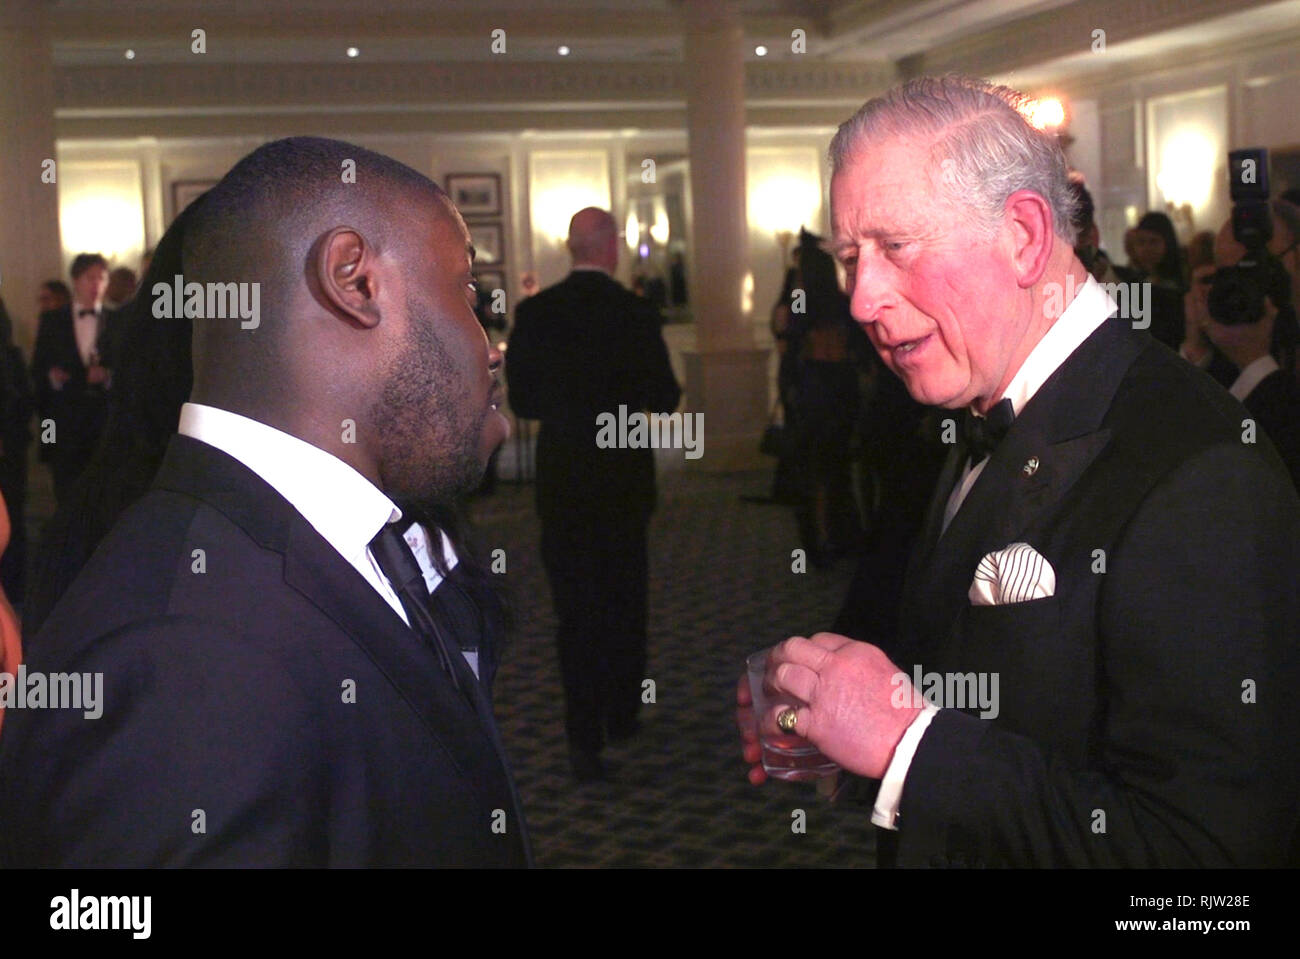 The Prince of Wales speaks to young ambassador Gideon Buabeng during an Invest in Futures Reception at the Savoy in London. - Stock Image